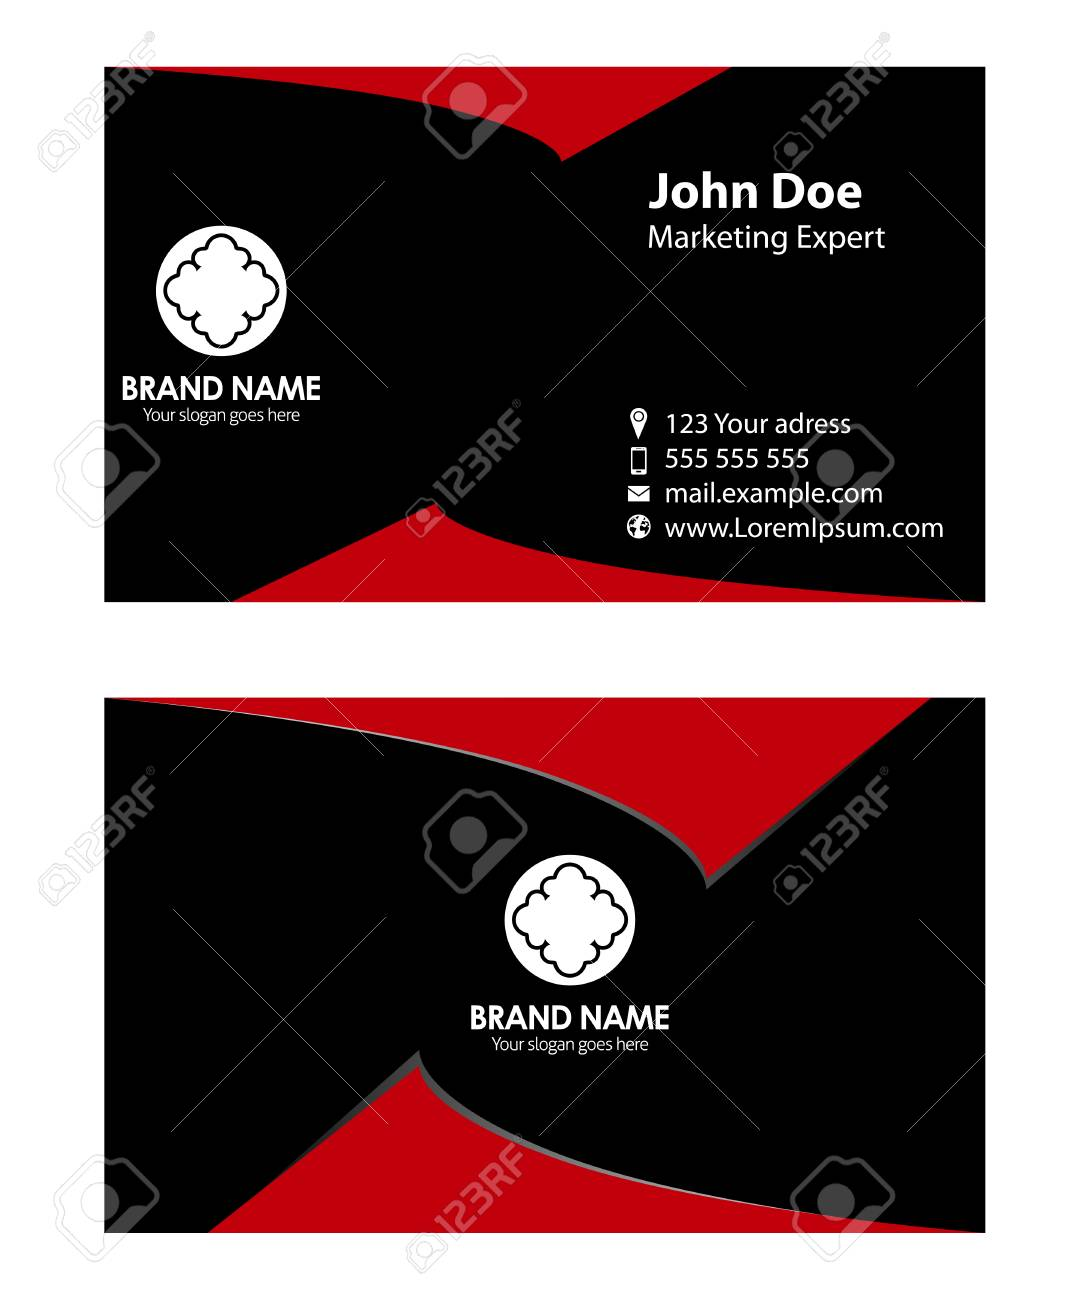 Black and red business card royalty free cliparts vectors and black and red business card stock vector 35015701 colourmoves